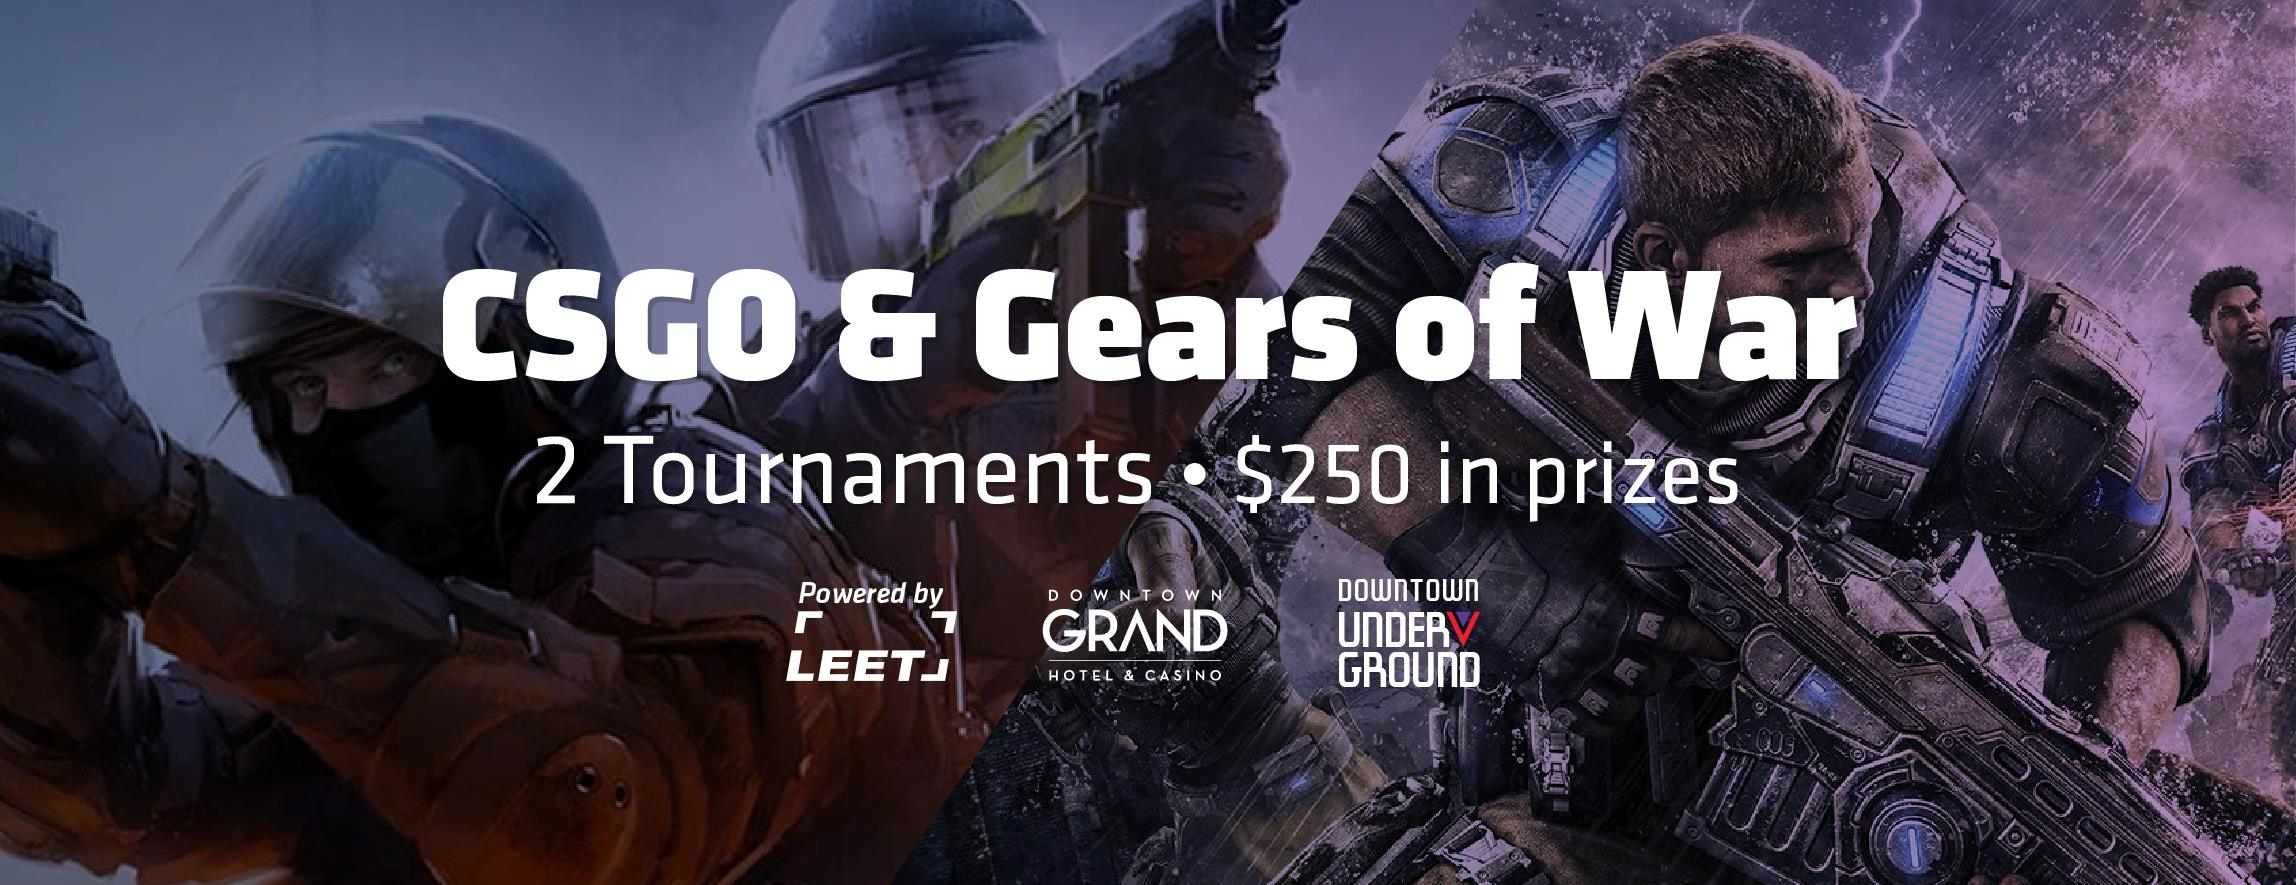 CS:GO and Gears of War 1v1 | Esports in Las Vegas